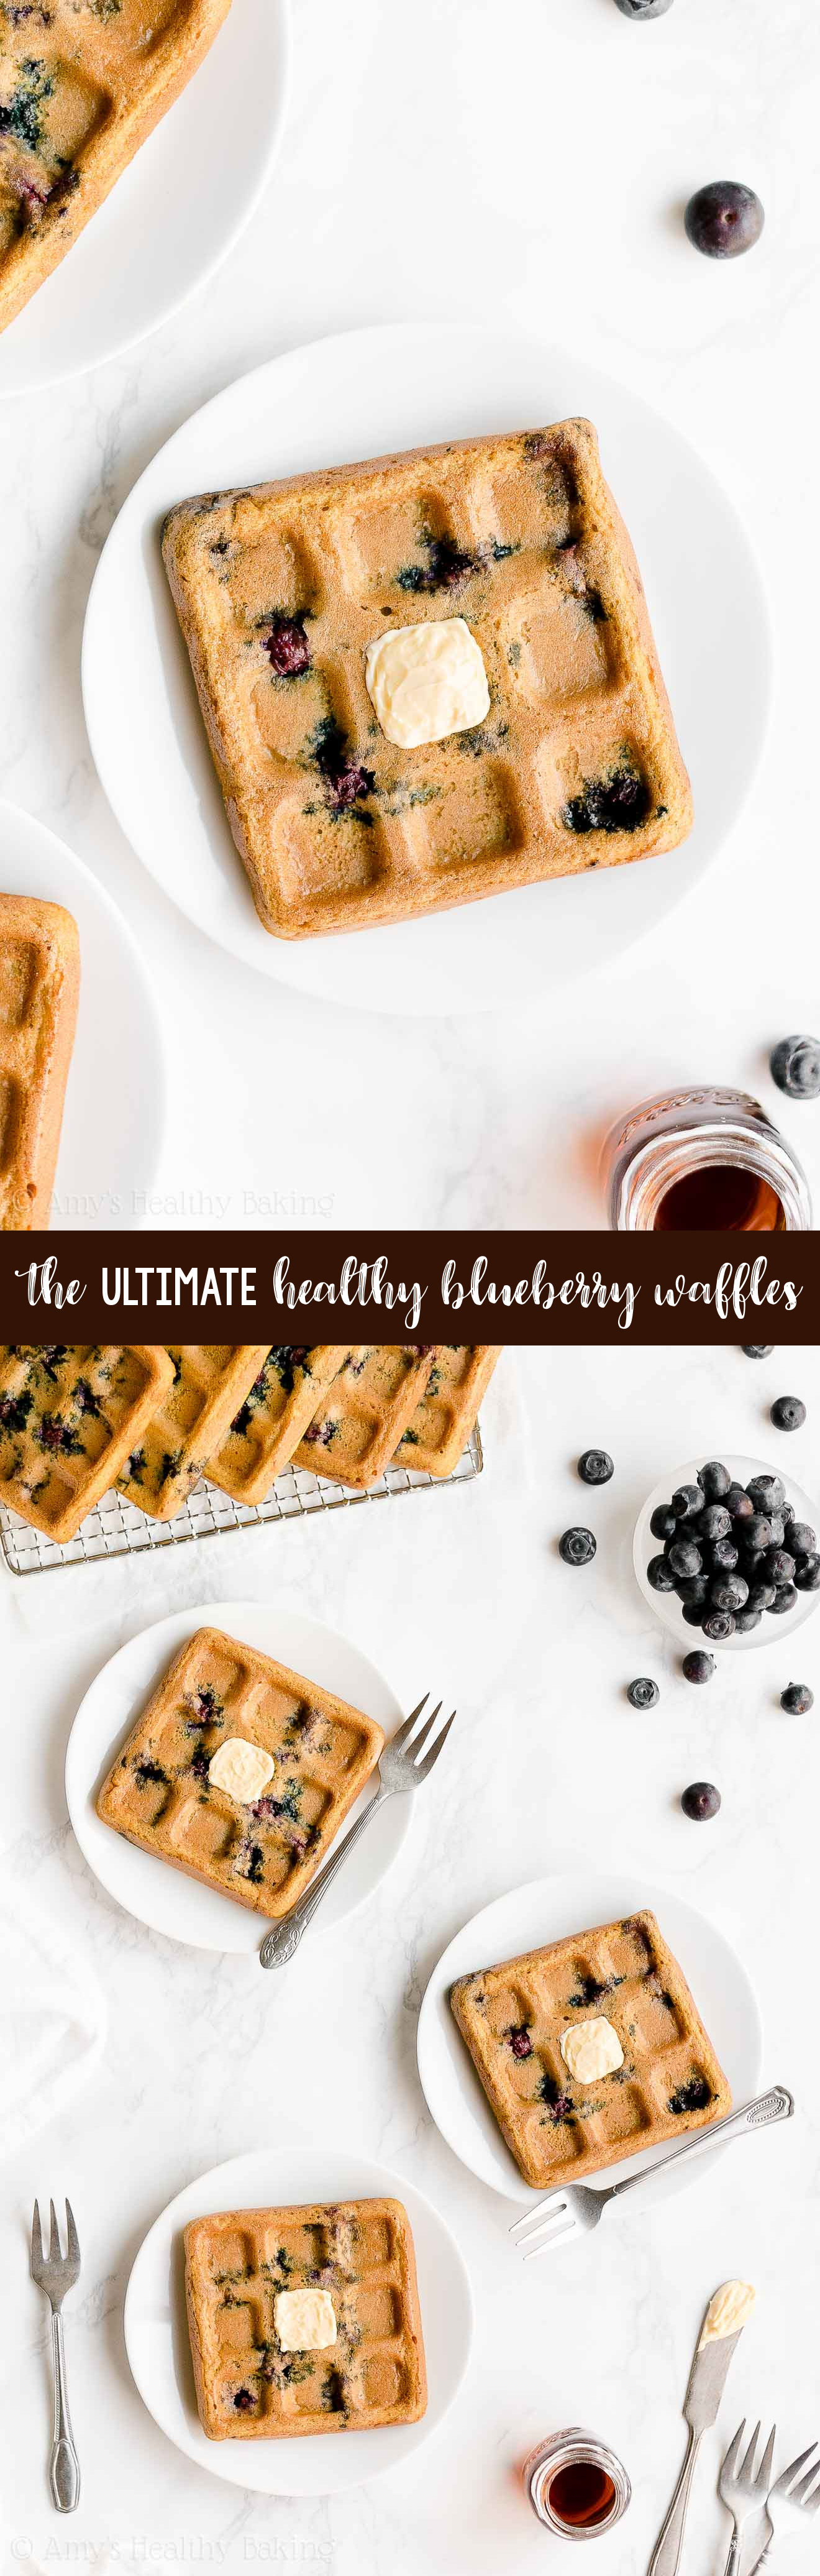 Best Ever Easy Healthy Clean Eating Fluffy & Crispy Homemade Blueberry Waffles